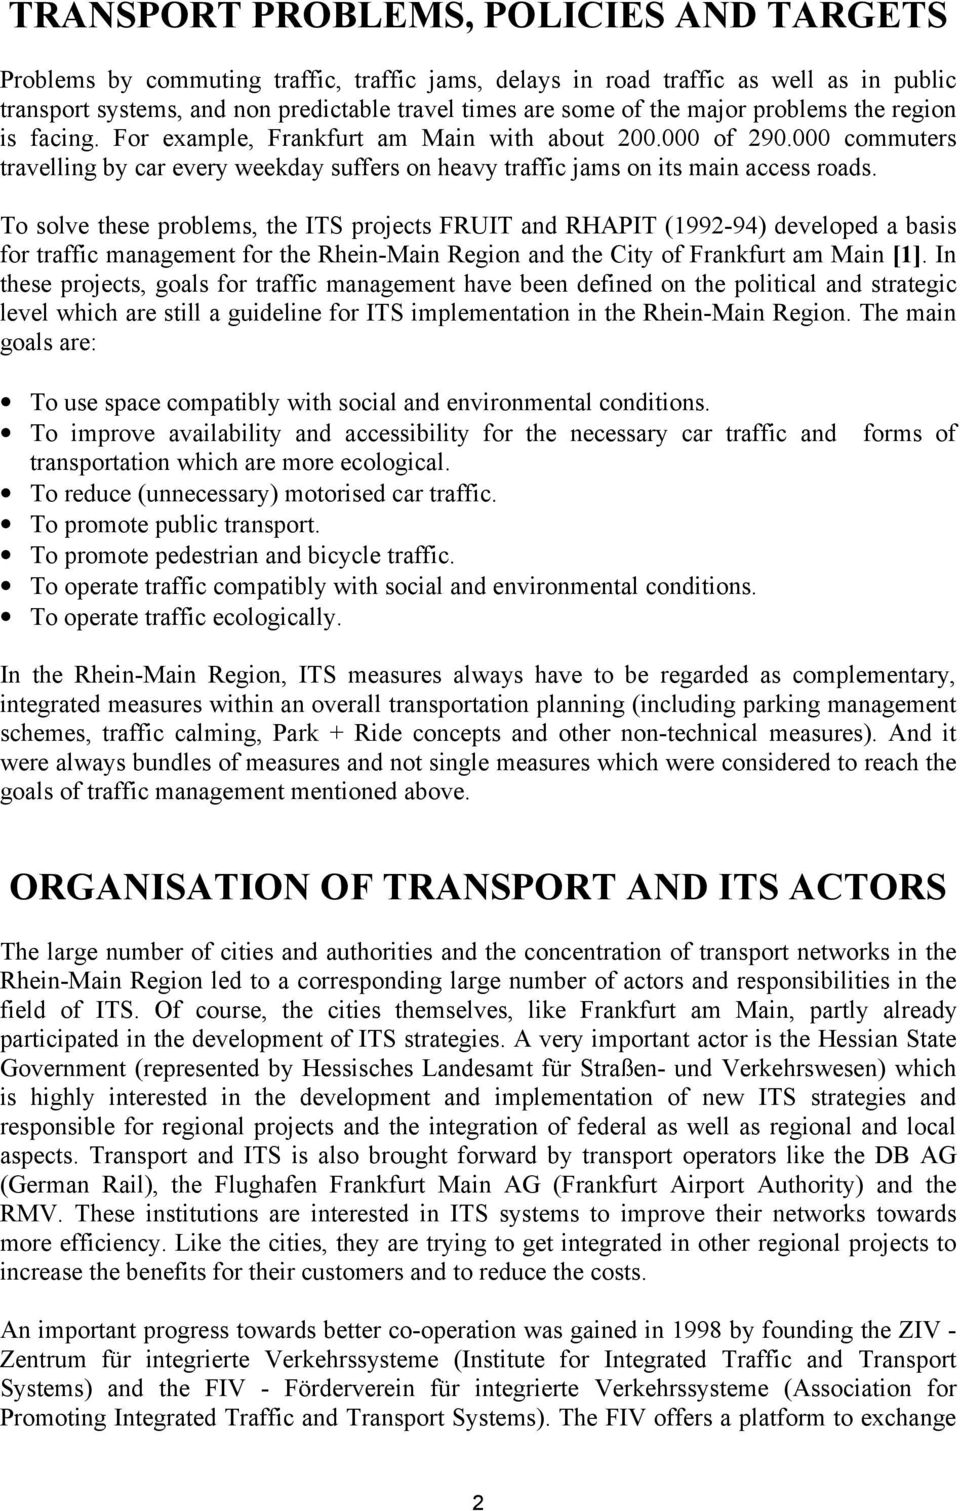 To solve these problems, the ITS projects FRUIT and RHAPIT (1992-94) developed a basis for traffic management for the Rhein-Main Region and the City of Frankfurt am Main [1].